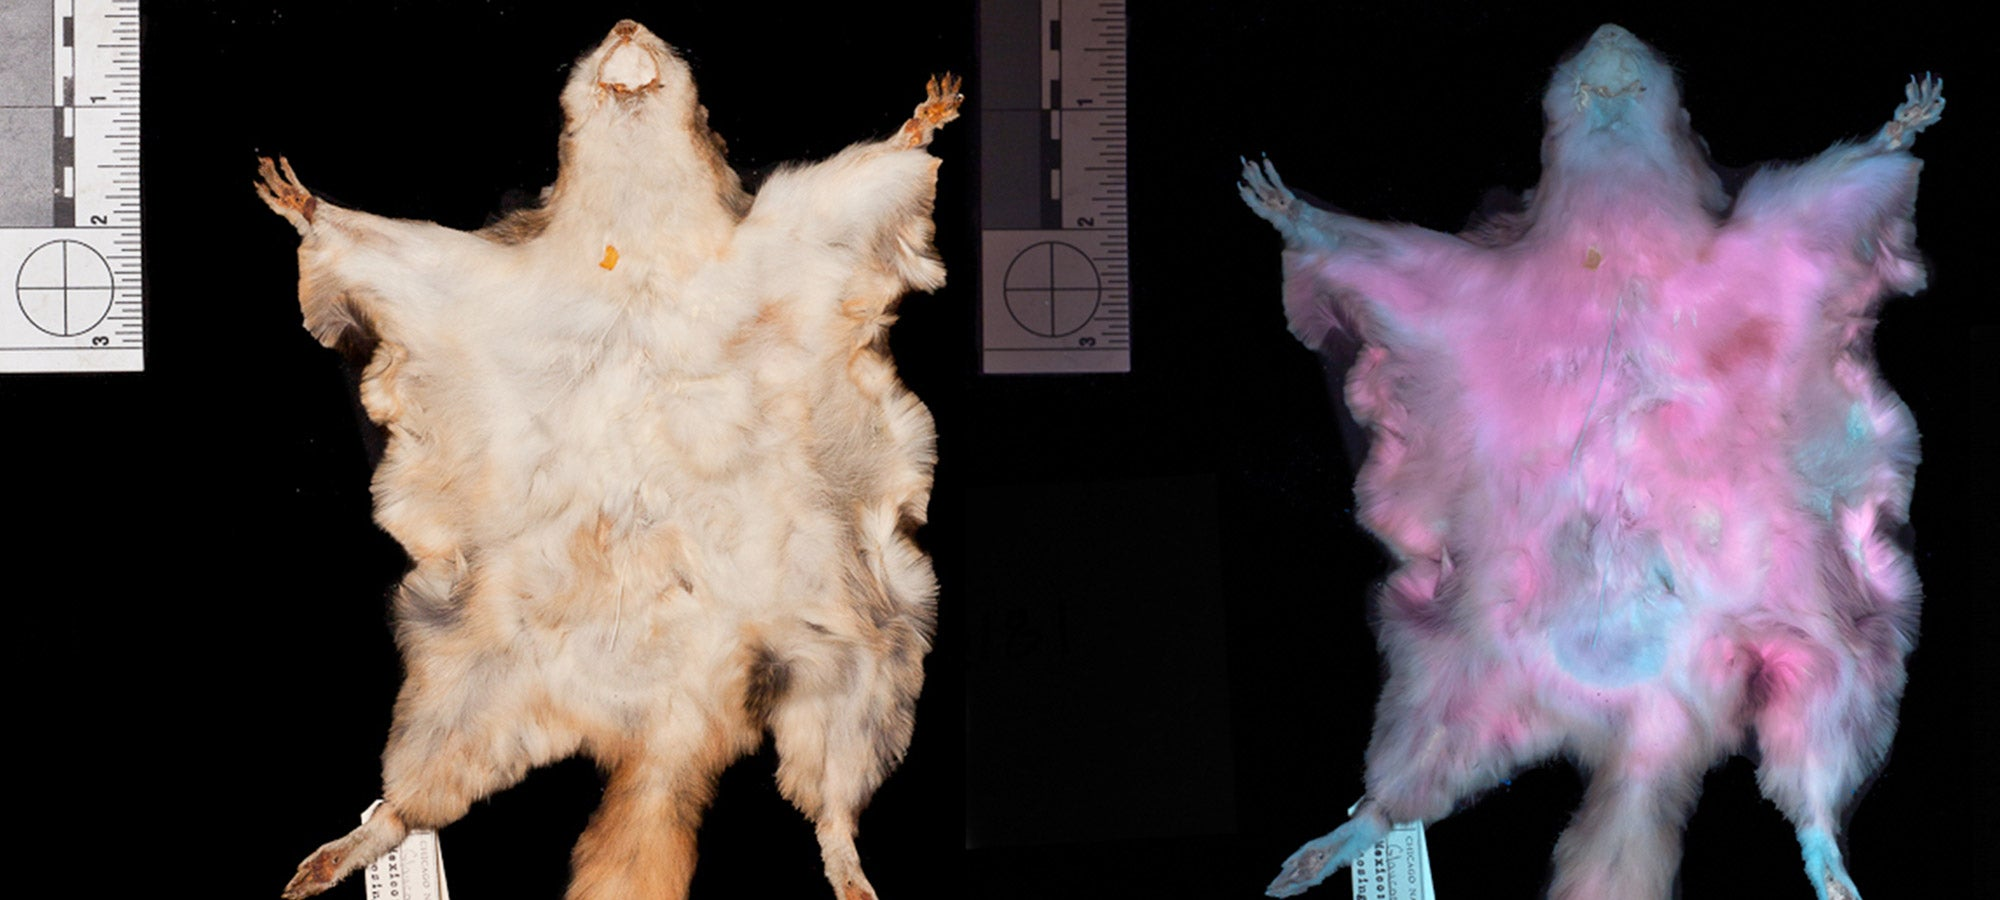 These flying squirrels fluoresce hot pink, and no one knows exactly why